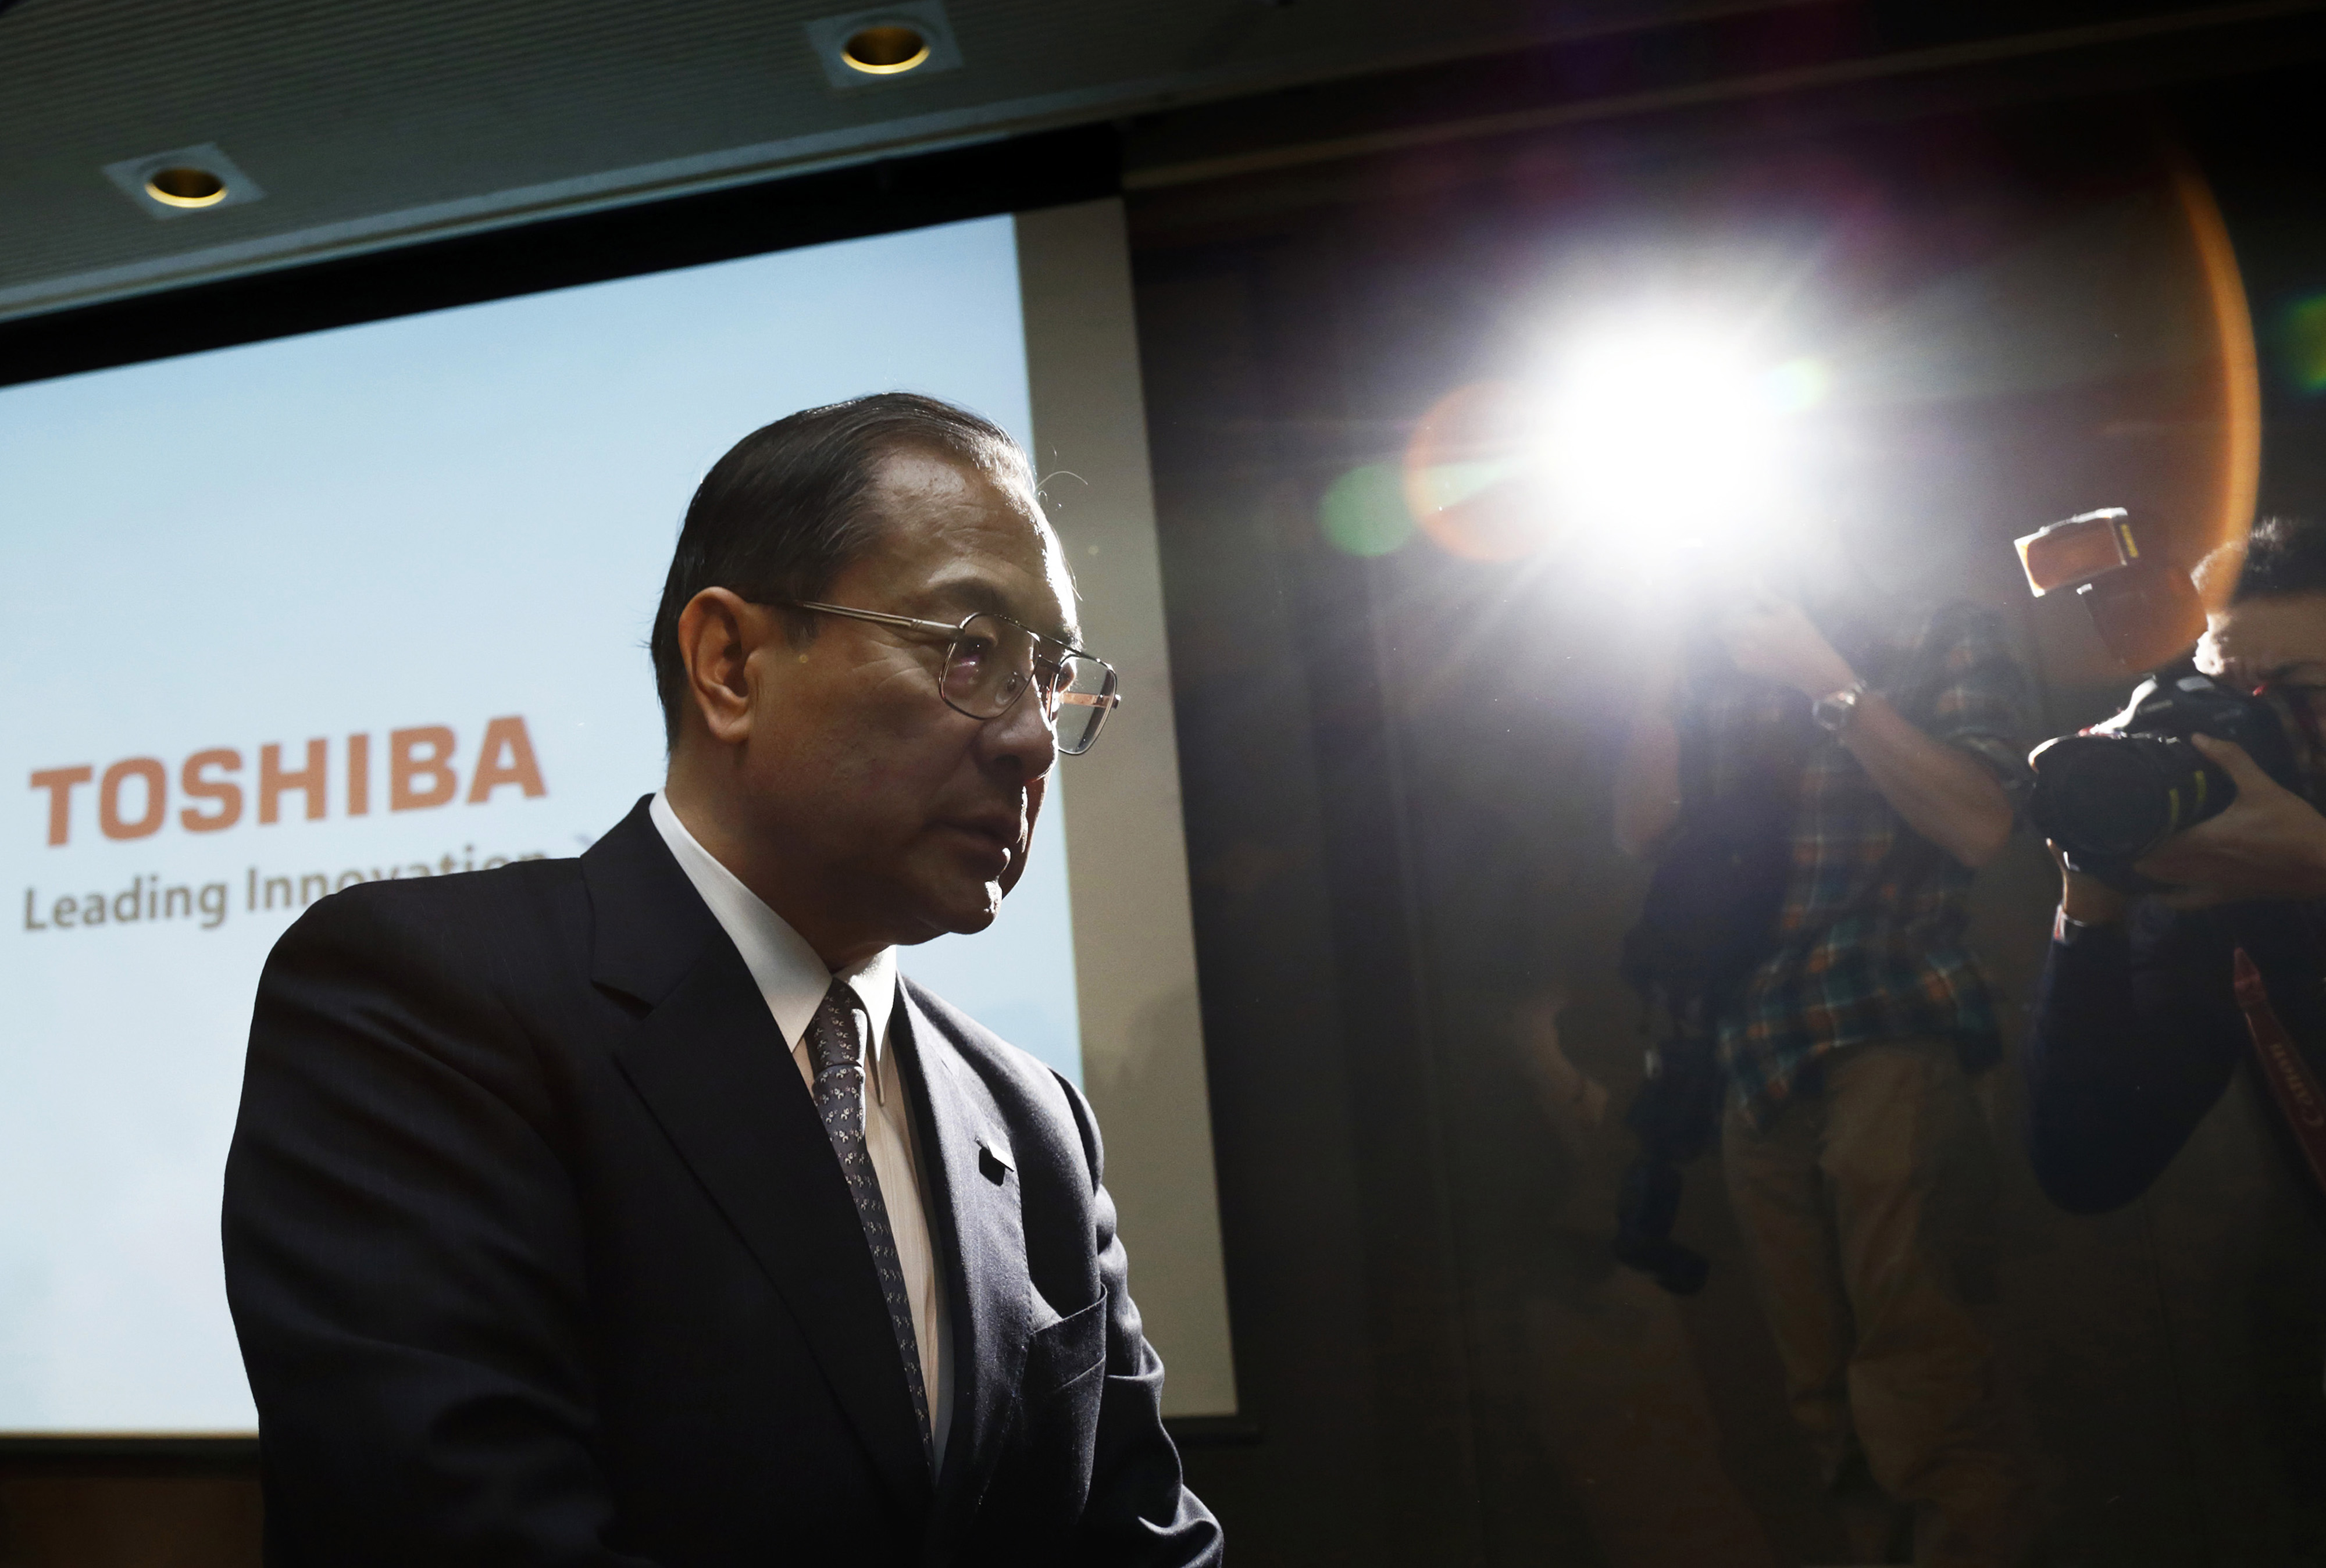 Toshiba Corp. President Masashi Muromachi leaves a news conference in Tokyo on Dec. 21 after announcing a record ¥550 billion loss forecast and job cuts.   BLOOMBERG